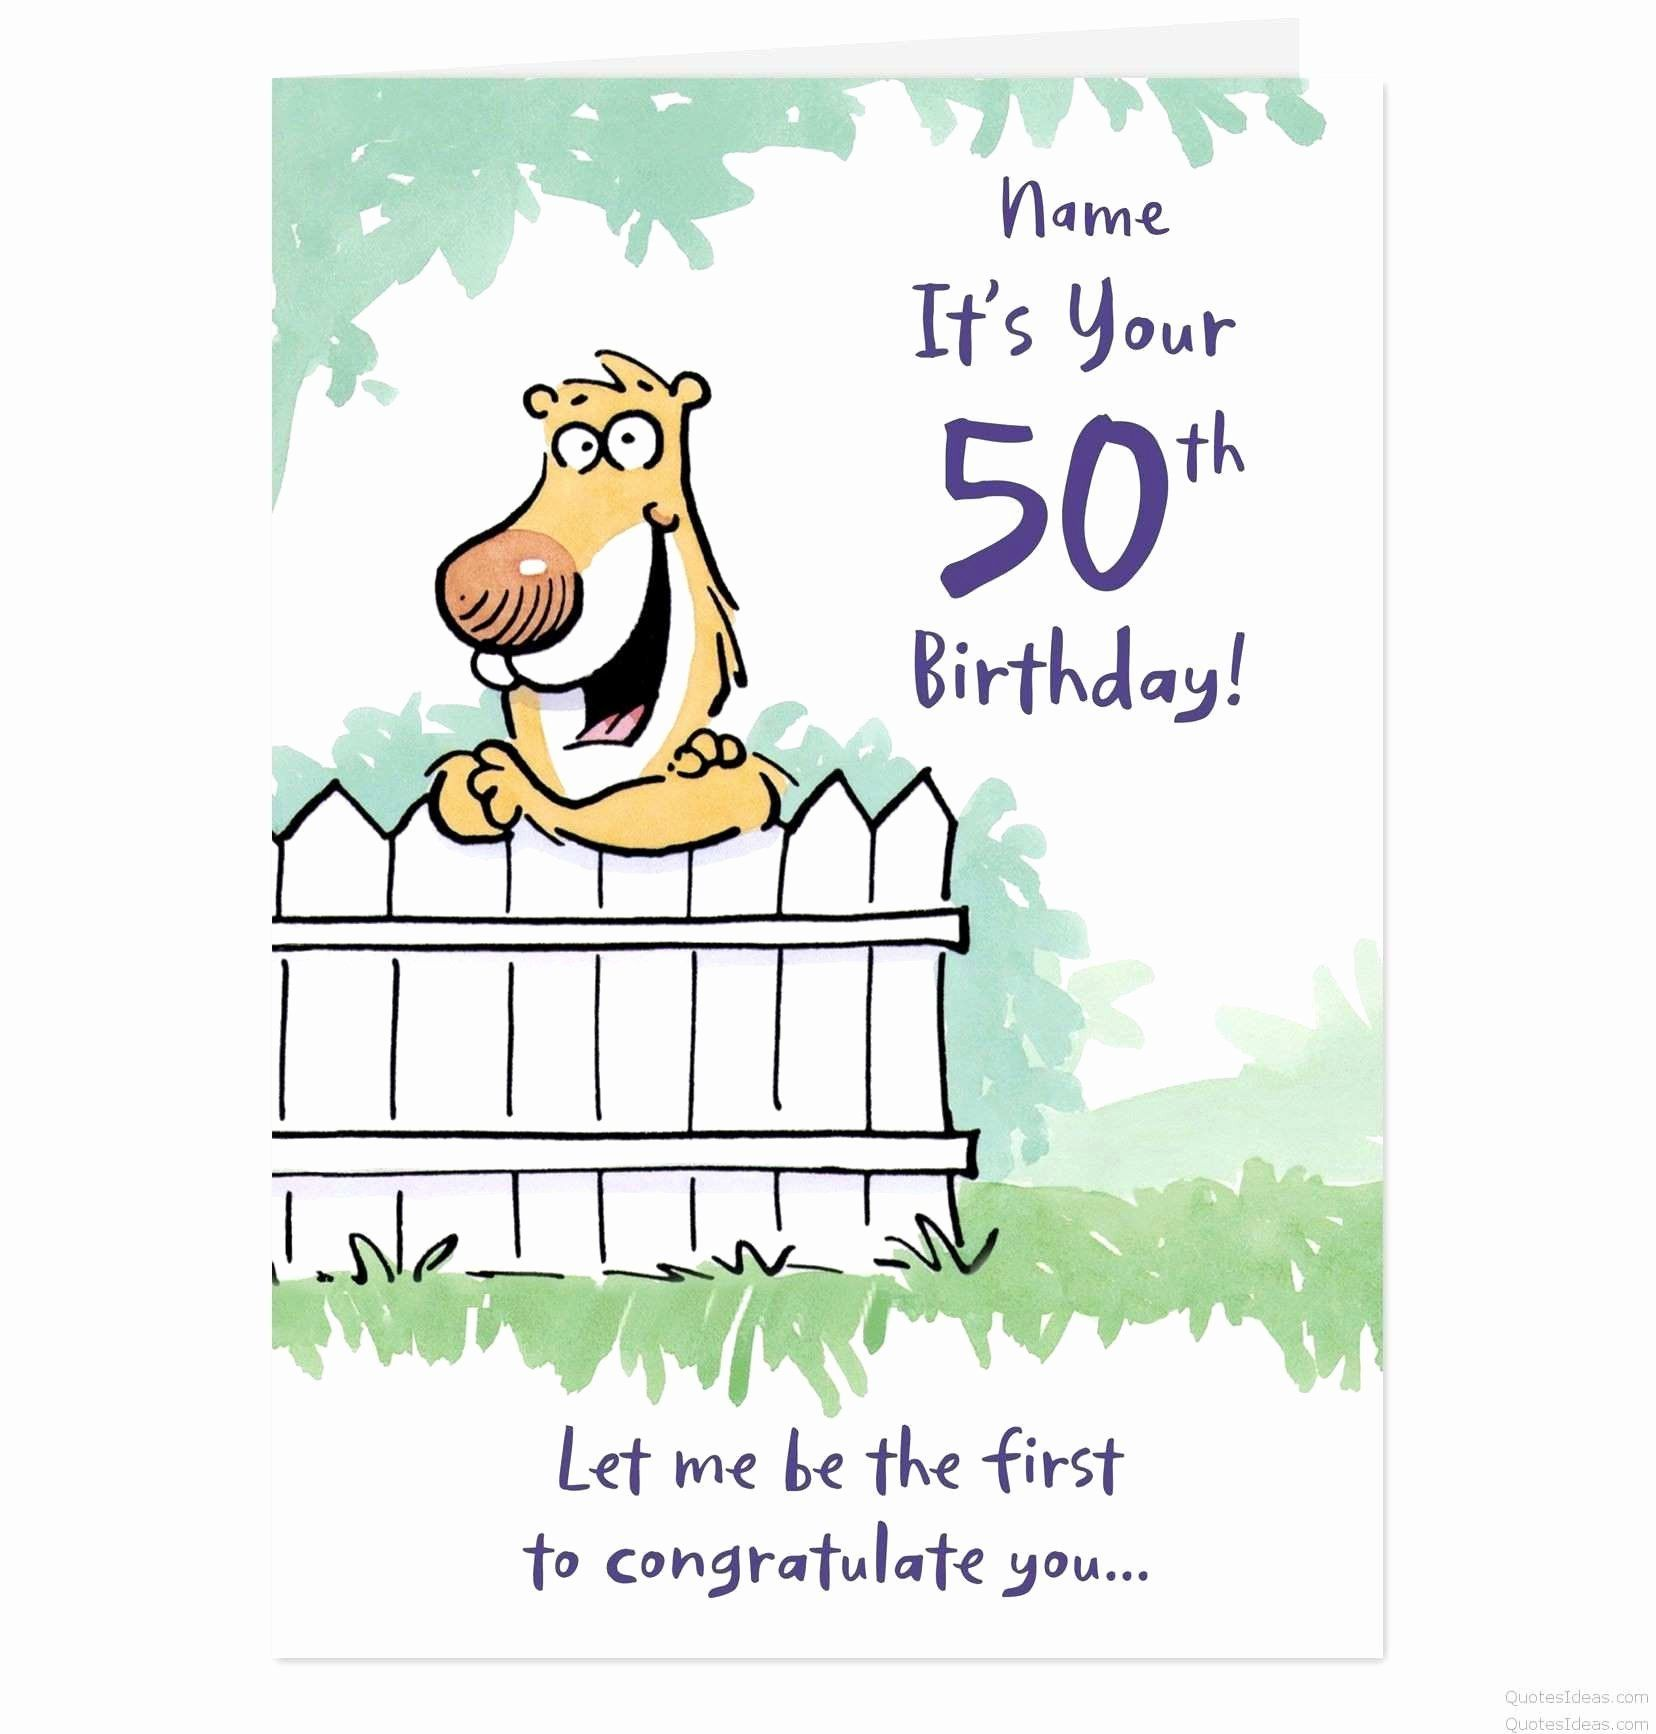 50th Birthday Card Messages In 2020 Funny Birthday Card Messages